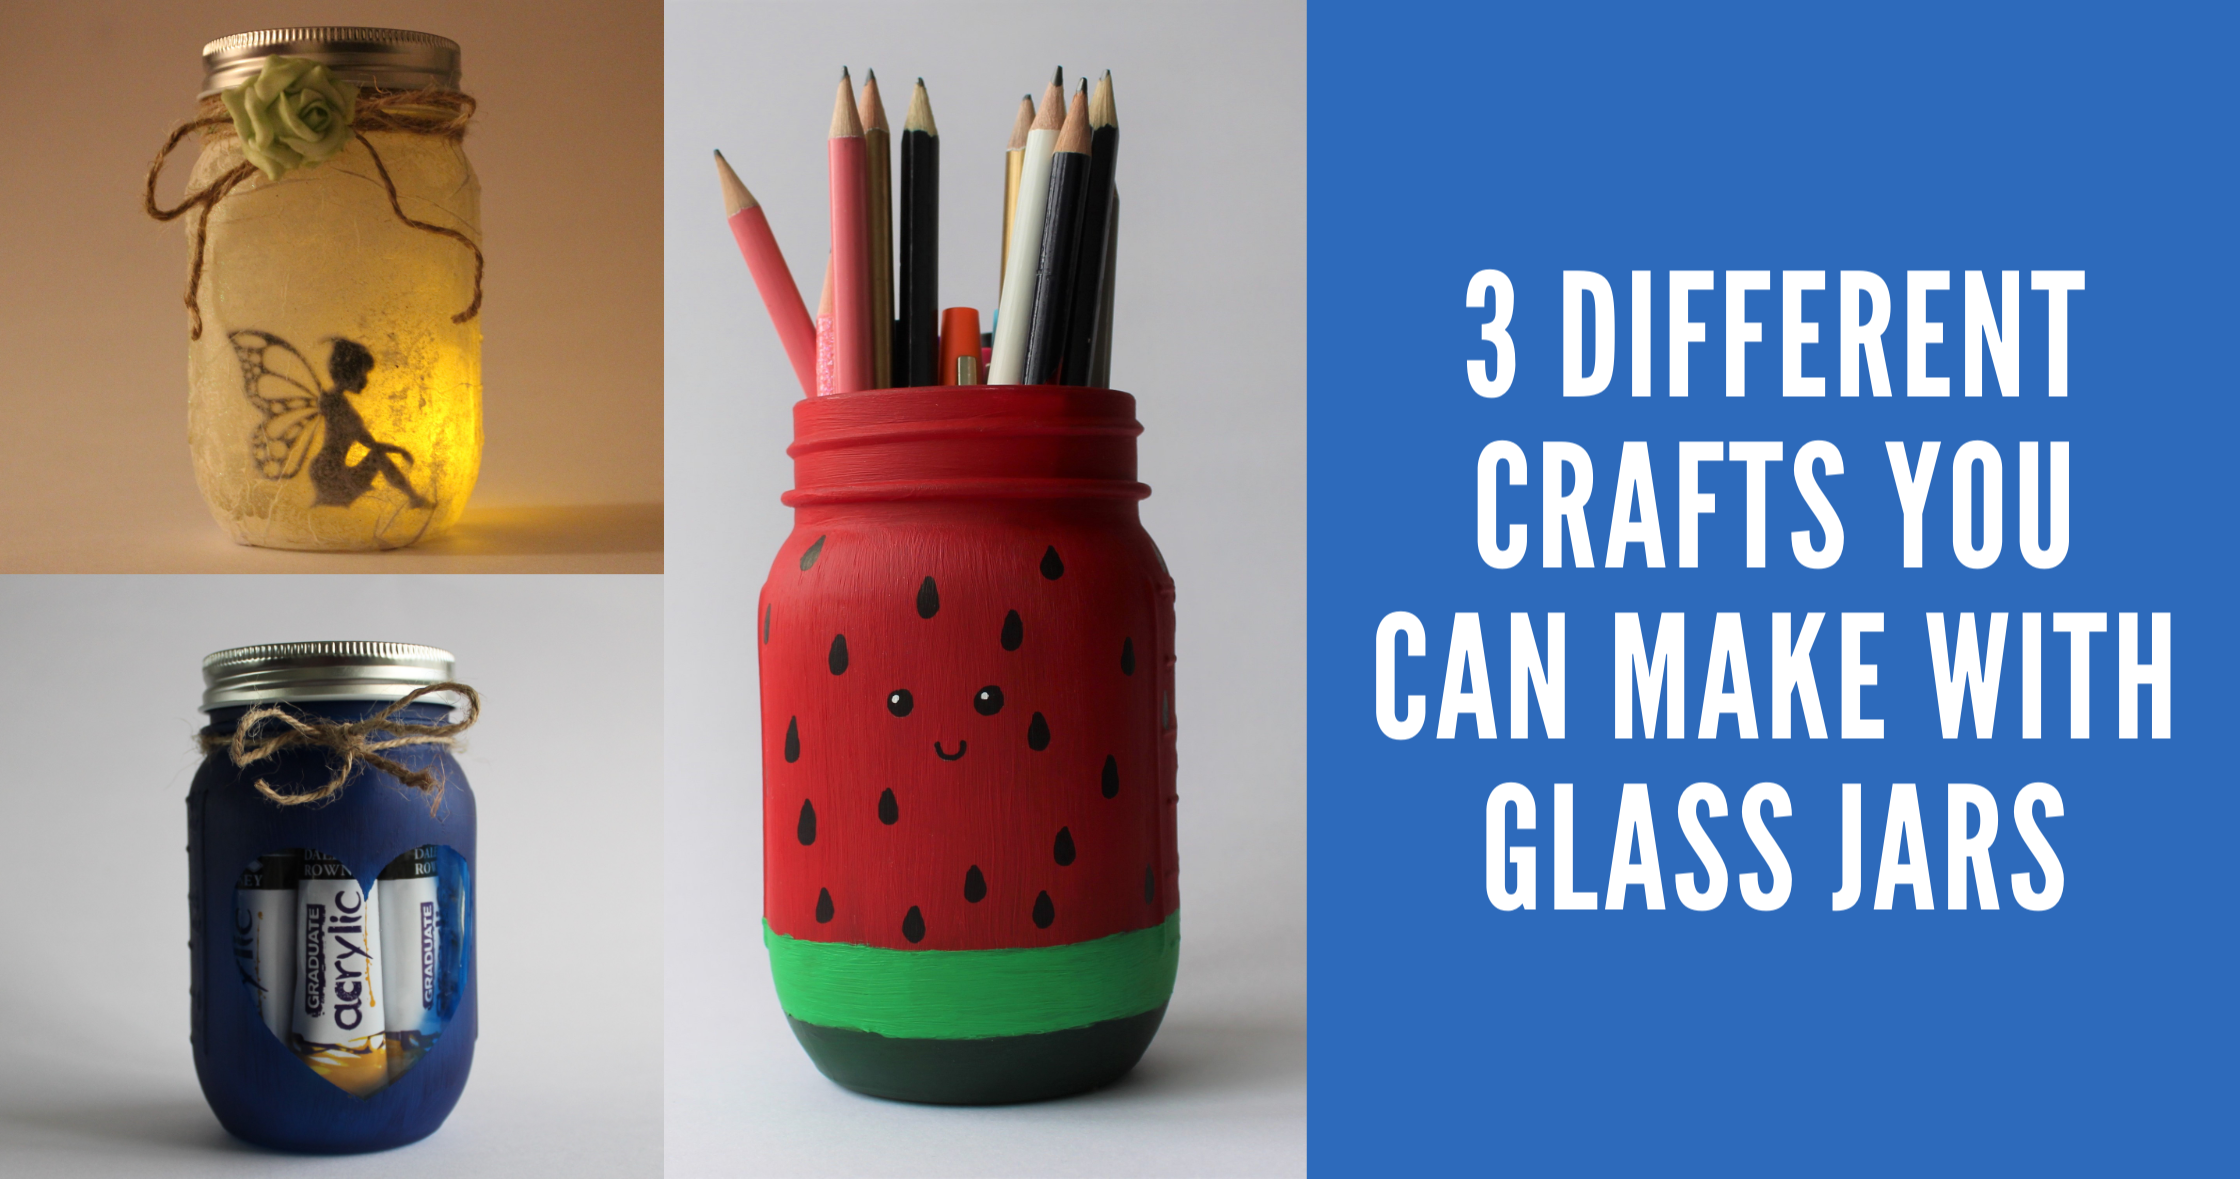 3 Different Crafts You Can Make with Glass Jars